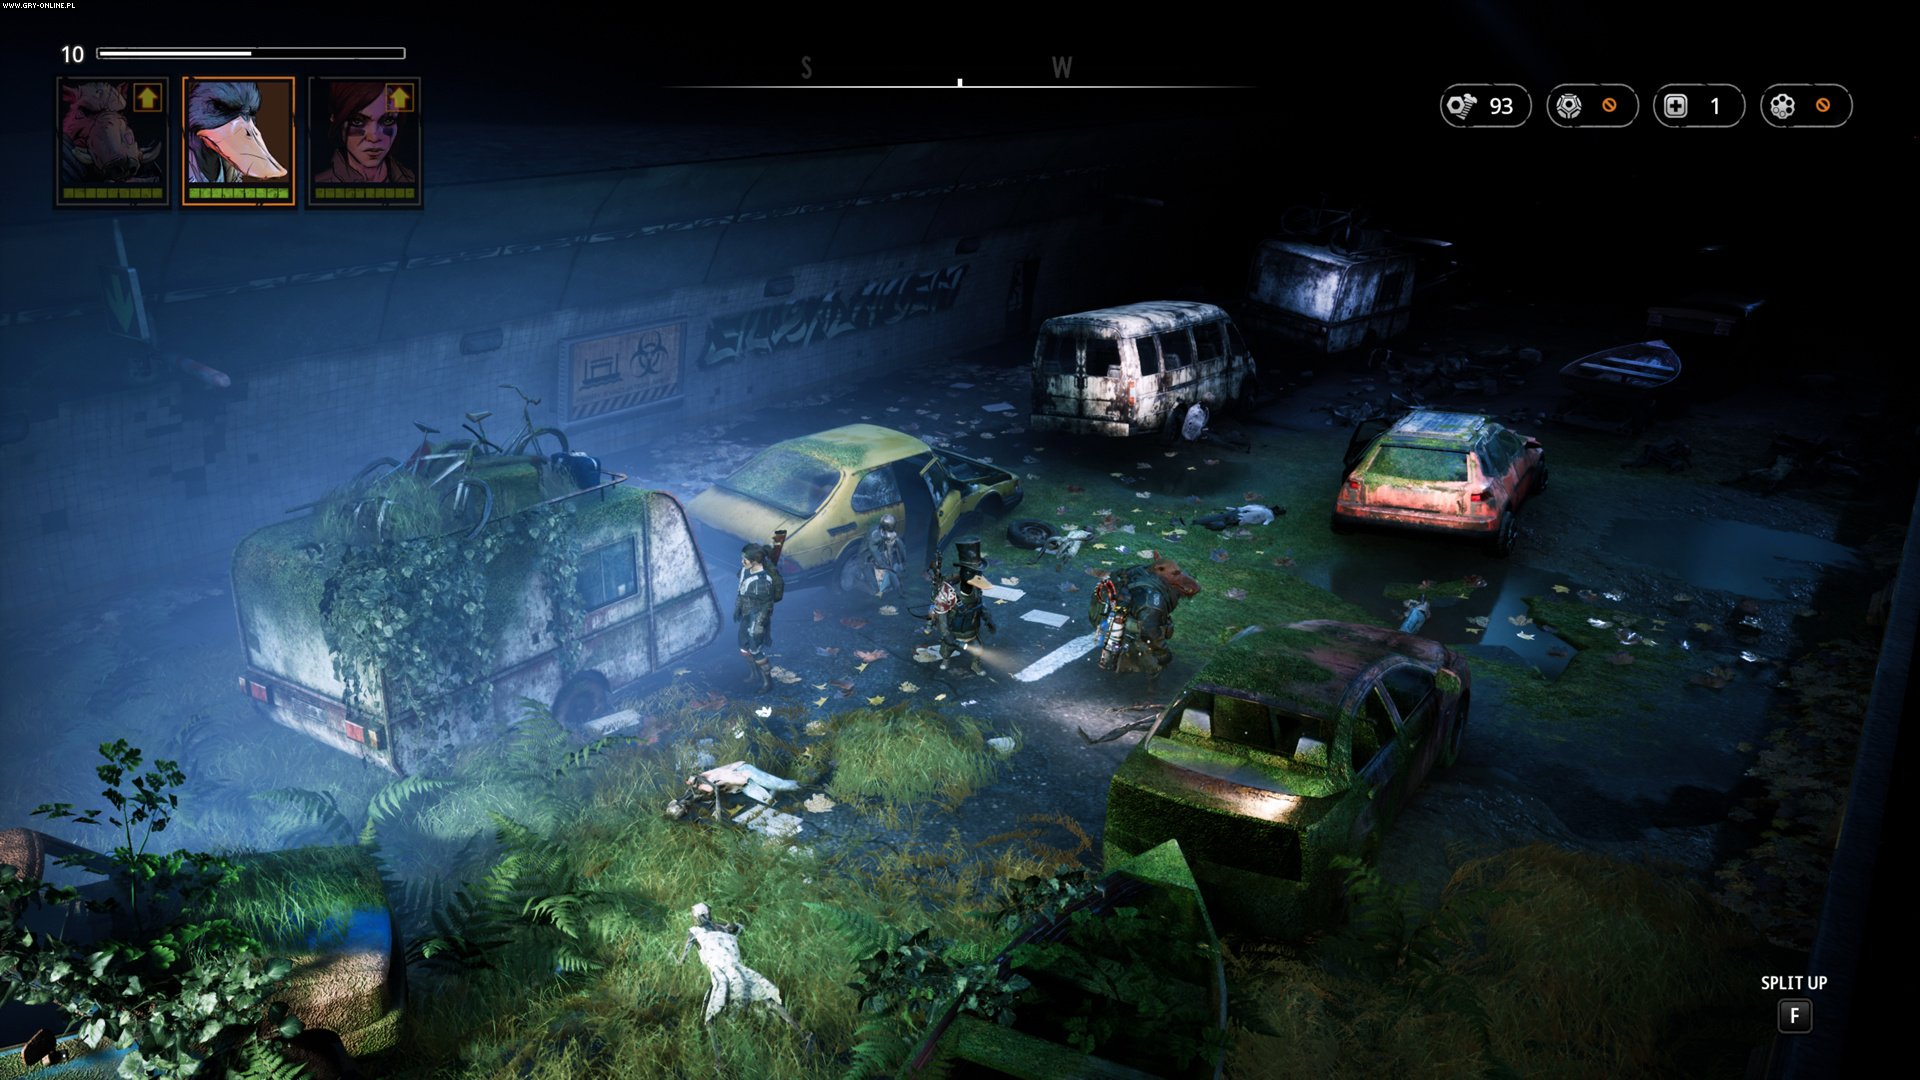 Mutant Year Zero: Road to Eden PC, PS4, XONE Games Image 17/31, The Bearded Ladies, FunCom